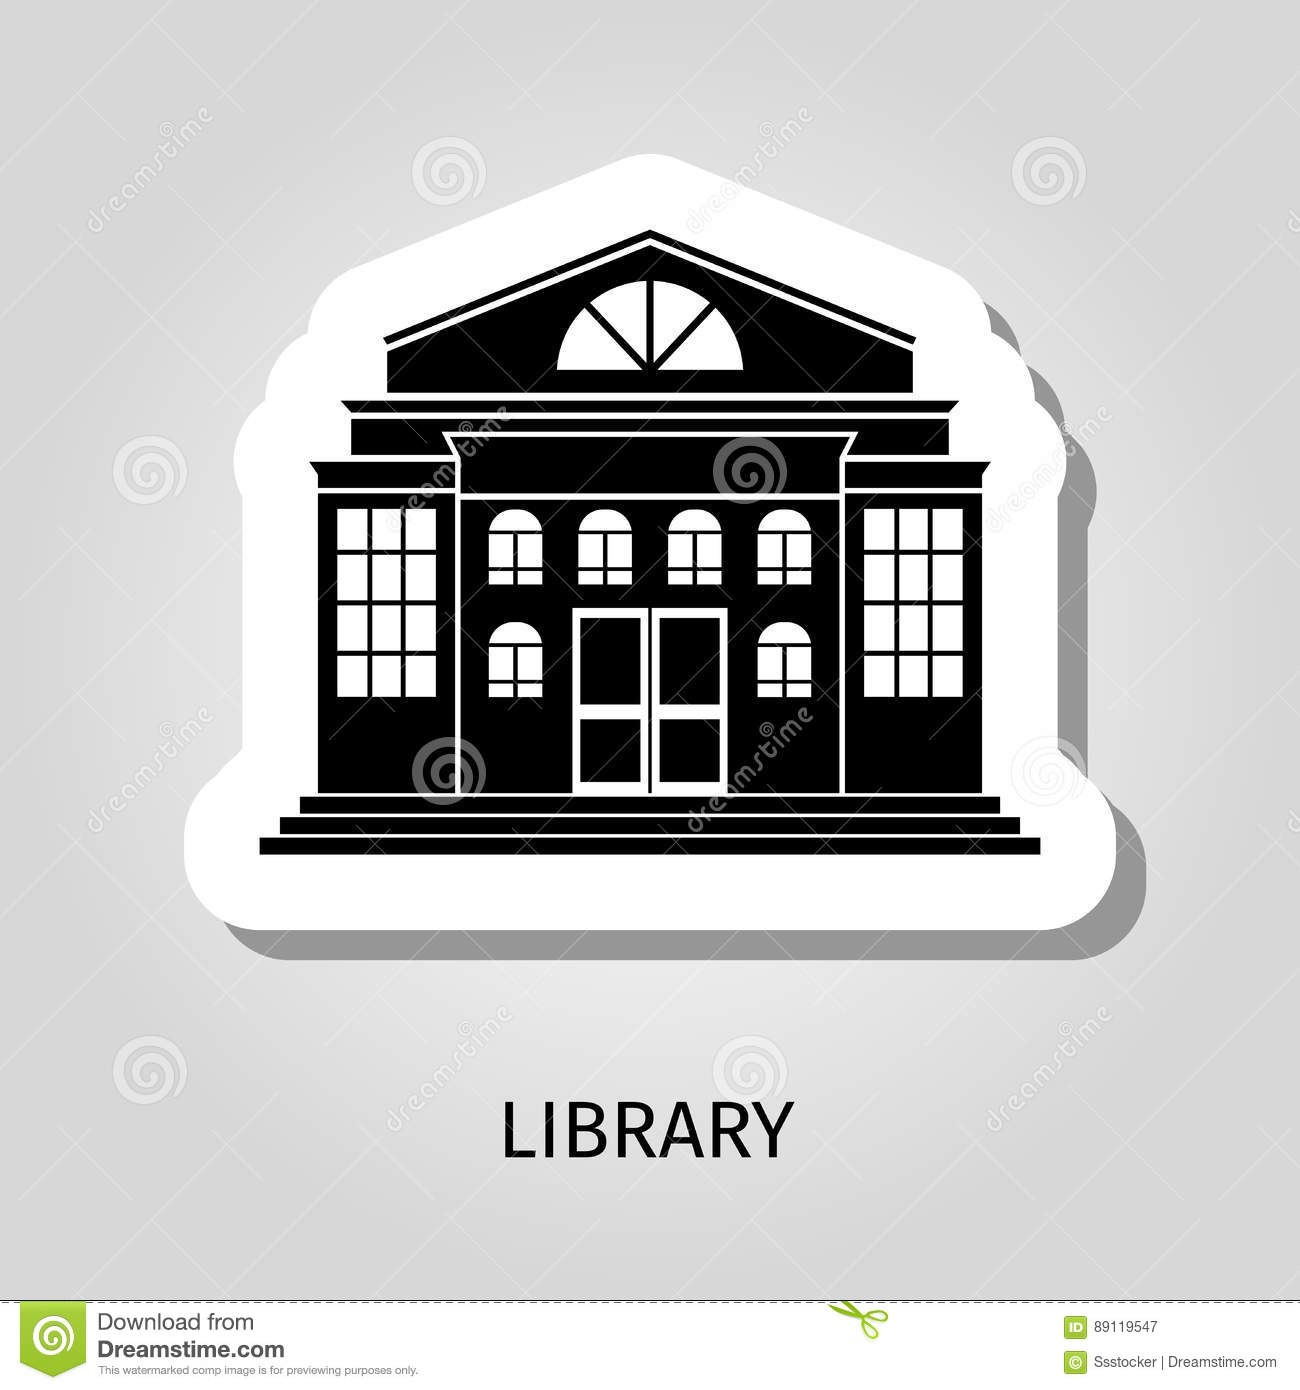 Library Building Black Sticker Stock Vector - Illustration of